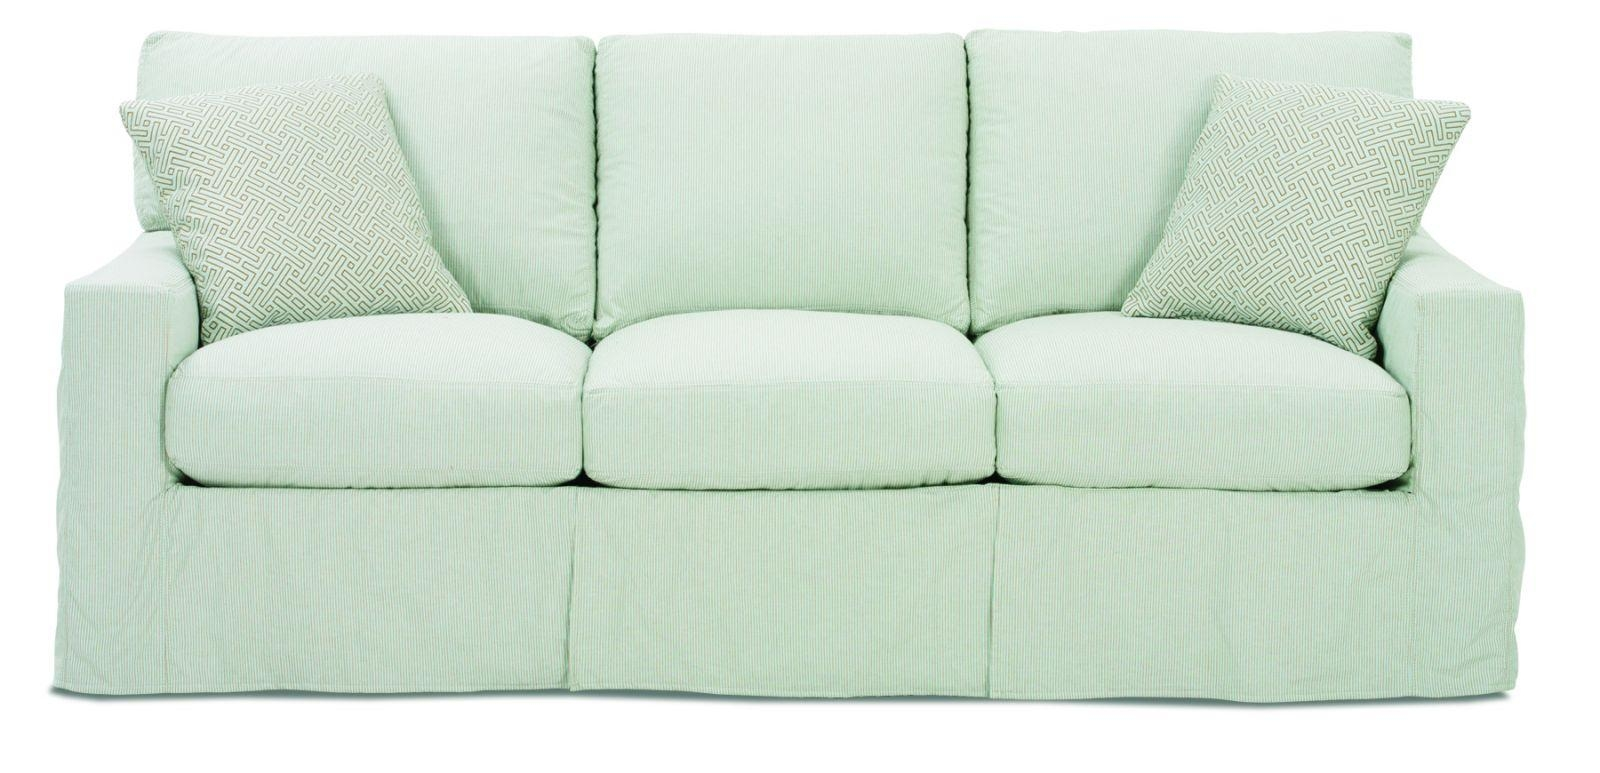 Slipcovers For Sofa Sleepers – Tourdecarroll Pertaining To Slipcovers For Sleeper Sofas (Image 17 of 20)